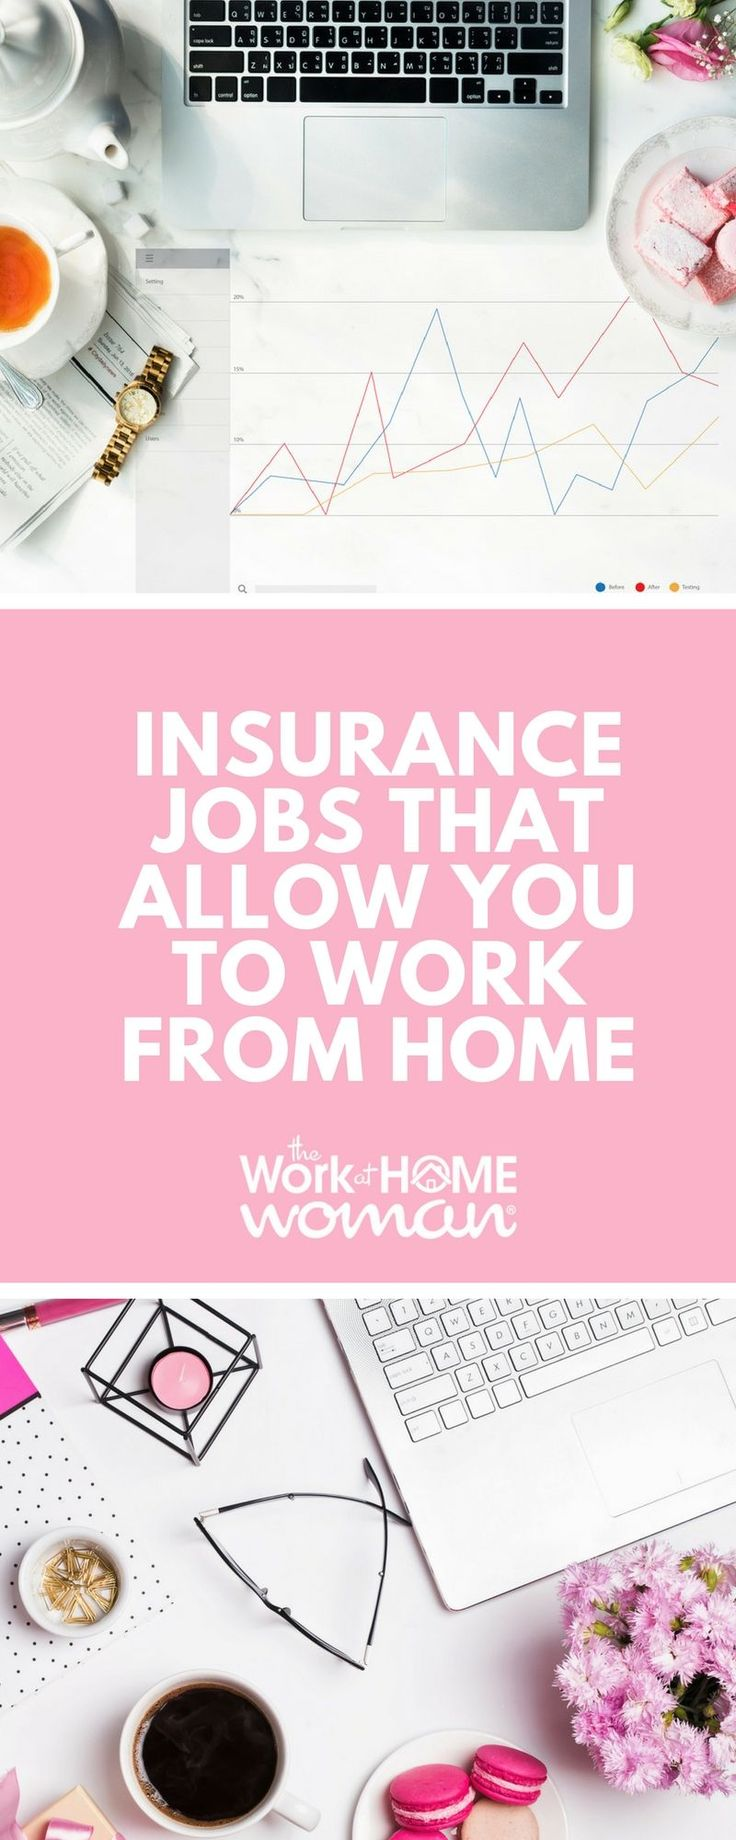 #telecommuters #telecommuting #workfromhome #workathome #industries